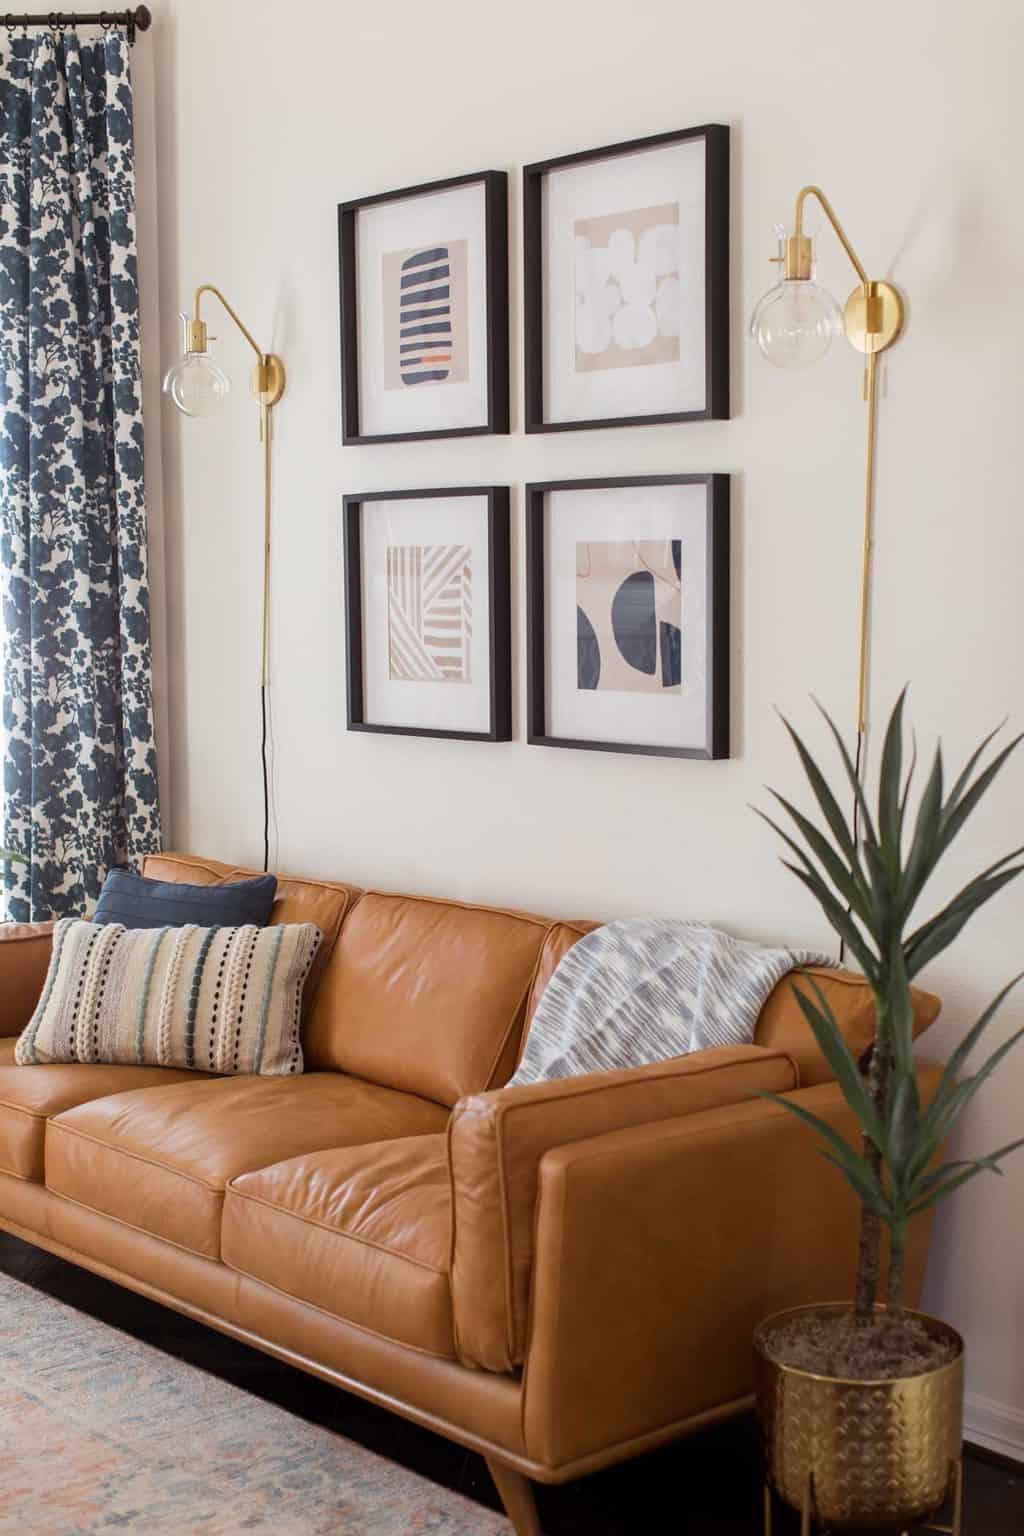 photo of the new modern artwork in the living room makeover by top Houston lifestyle blogger Ashley Rose of Sugar & Cloth